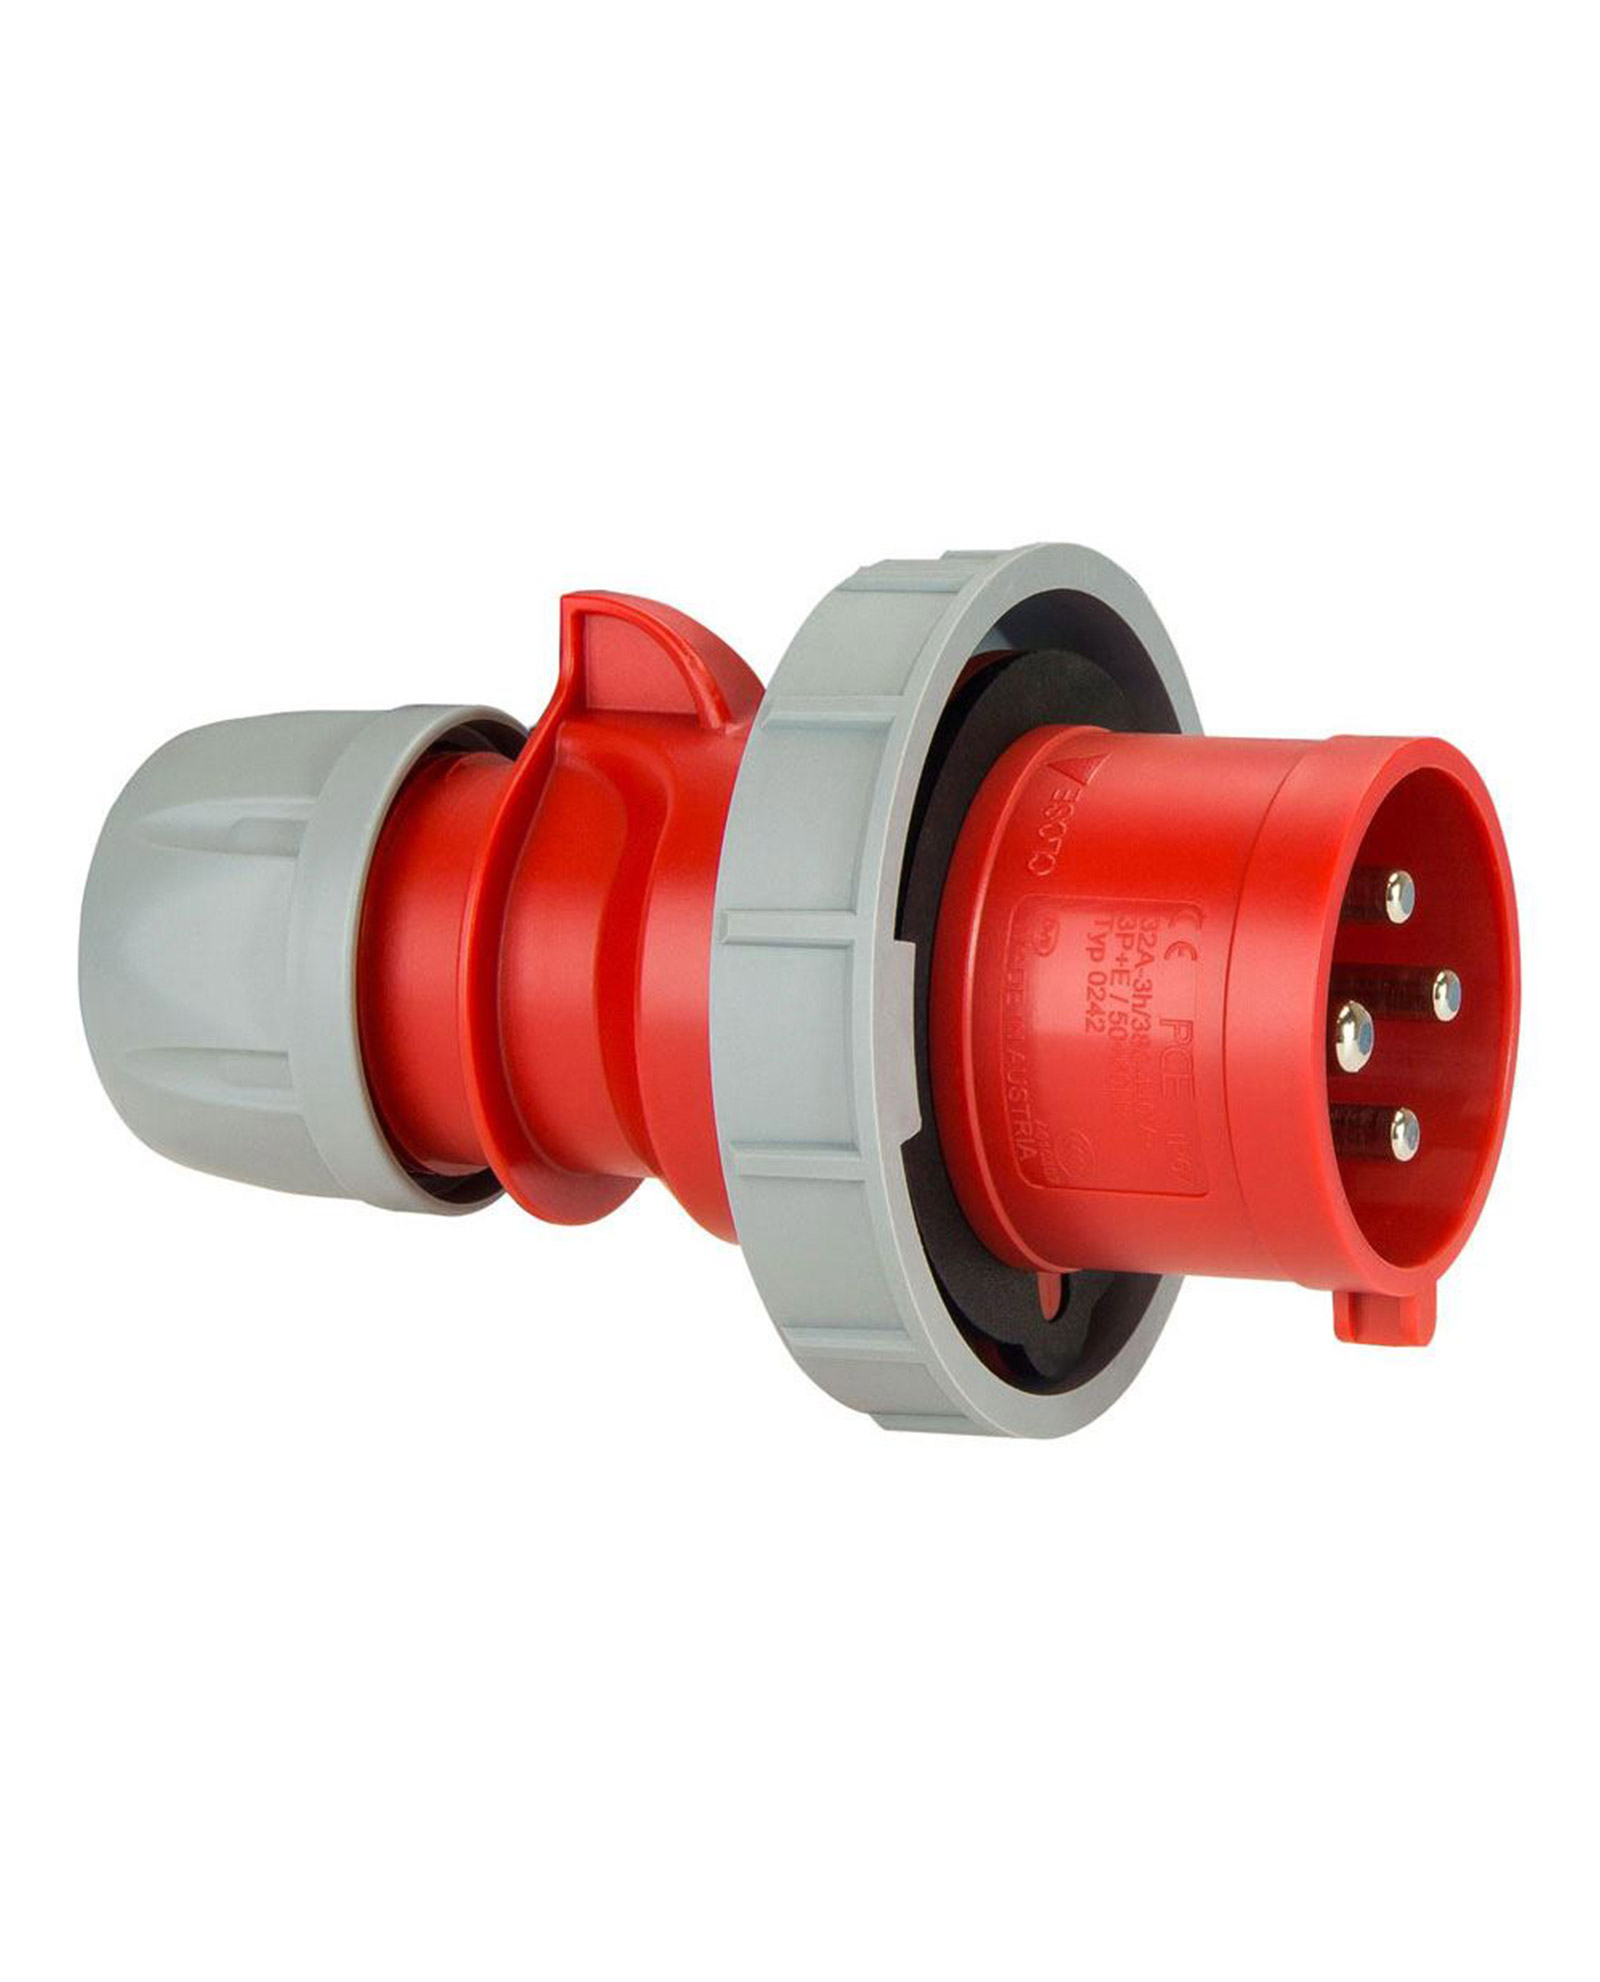 Pce Electric Cce Container Series Cable Plug 32a 4p Ip67